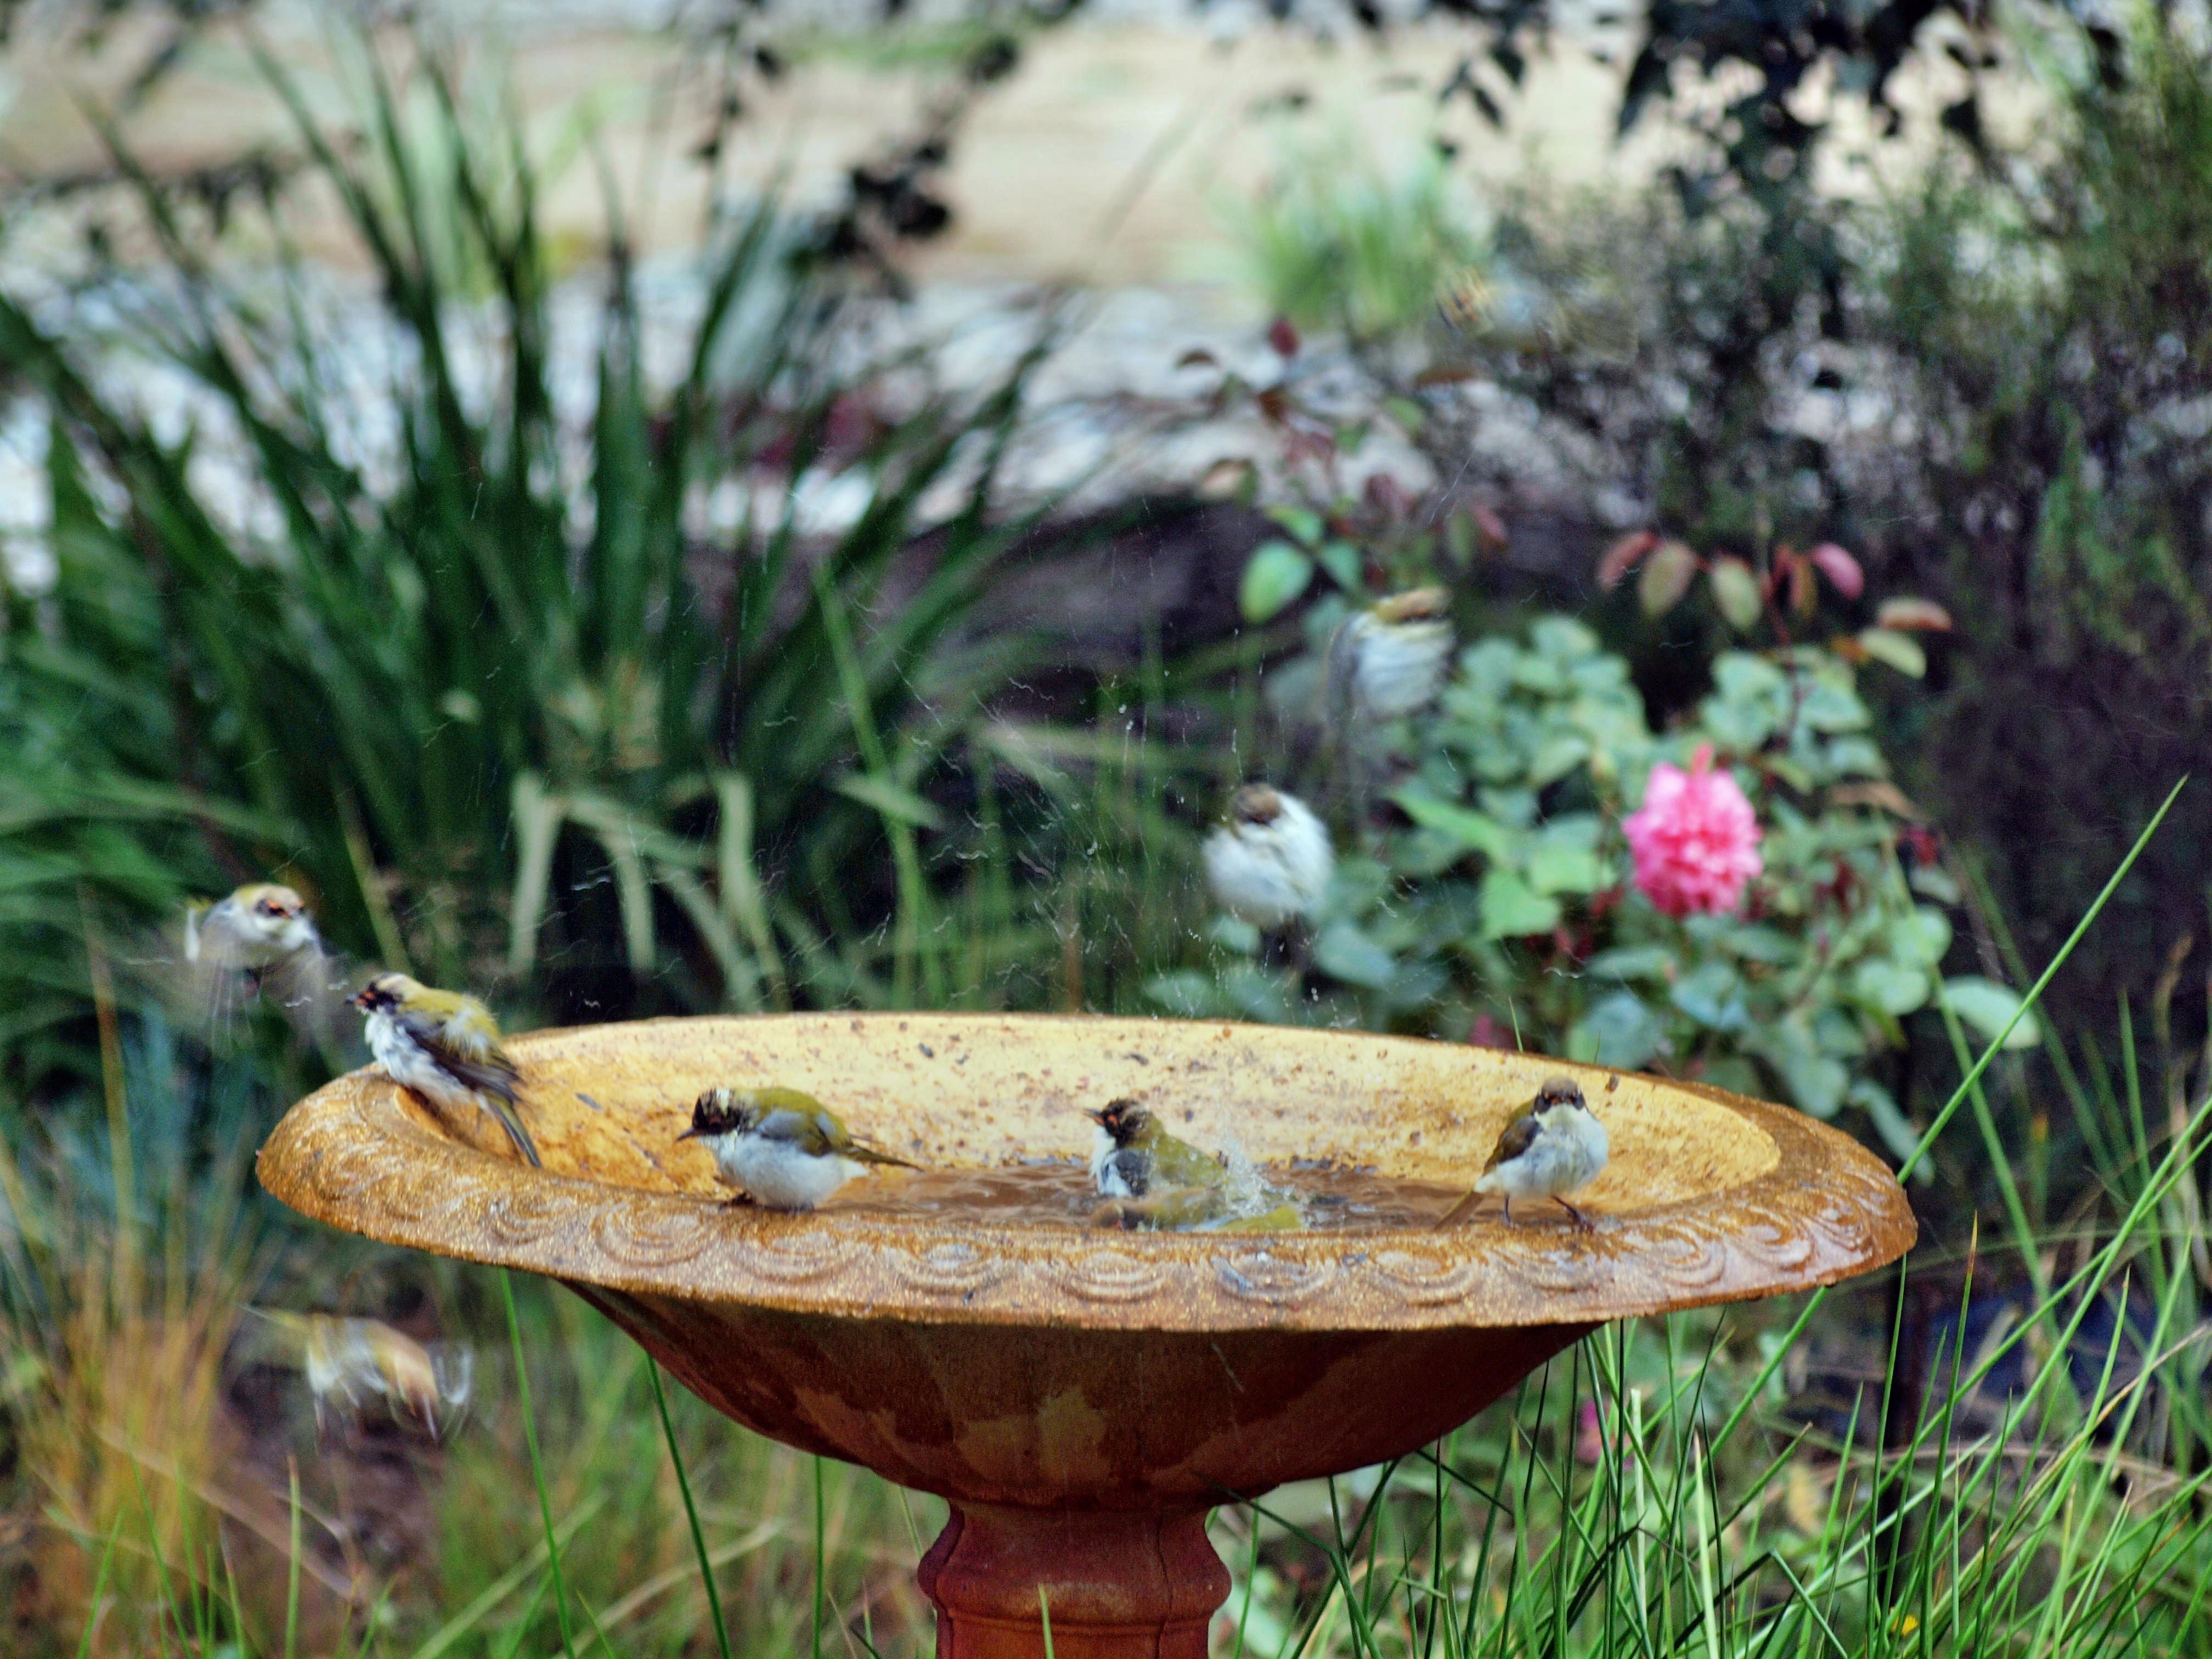 Bird-bath-36.jpeg